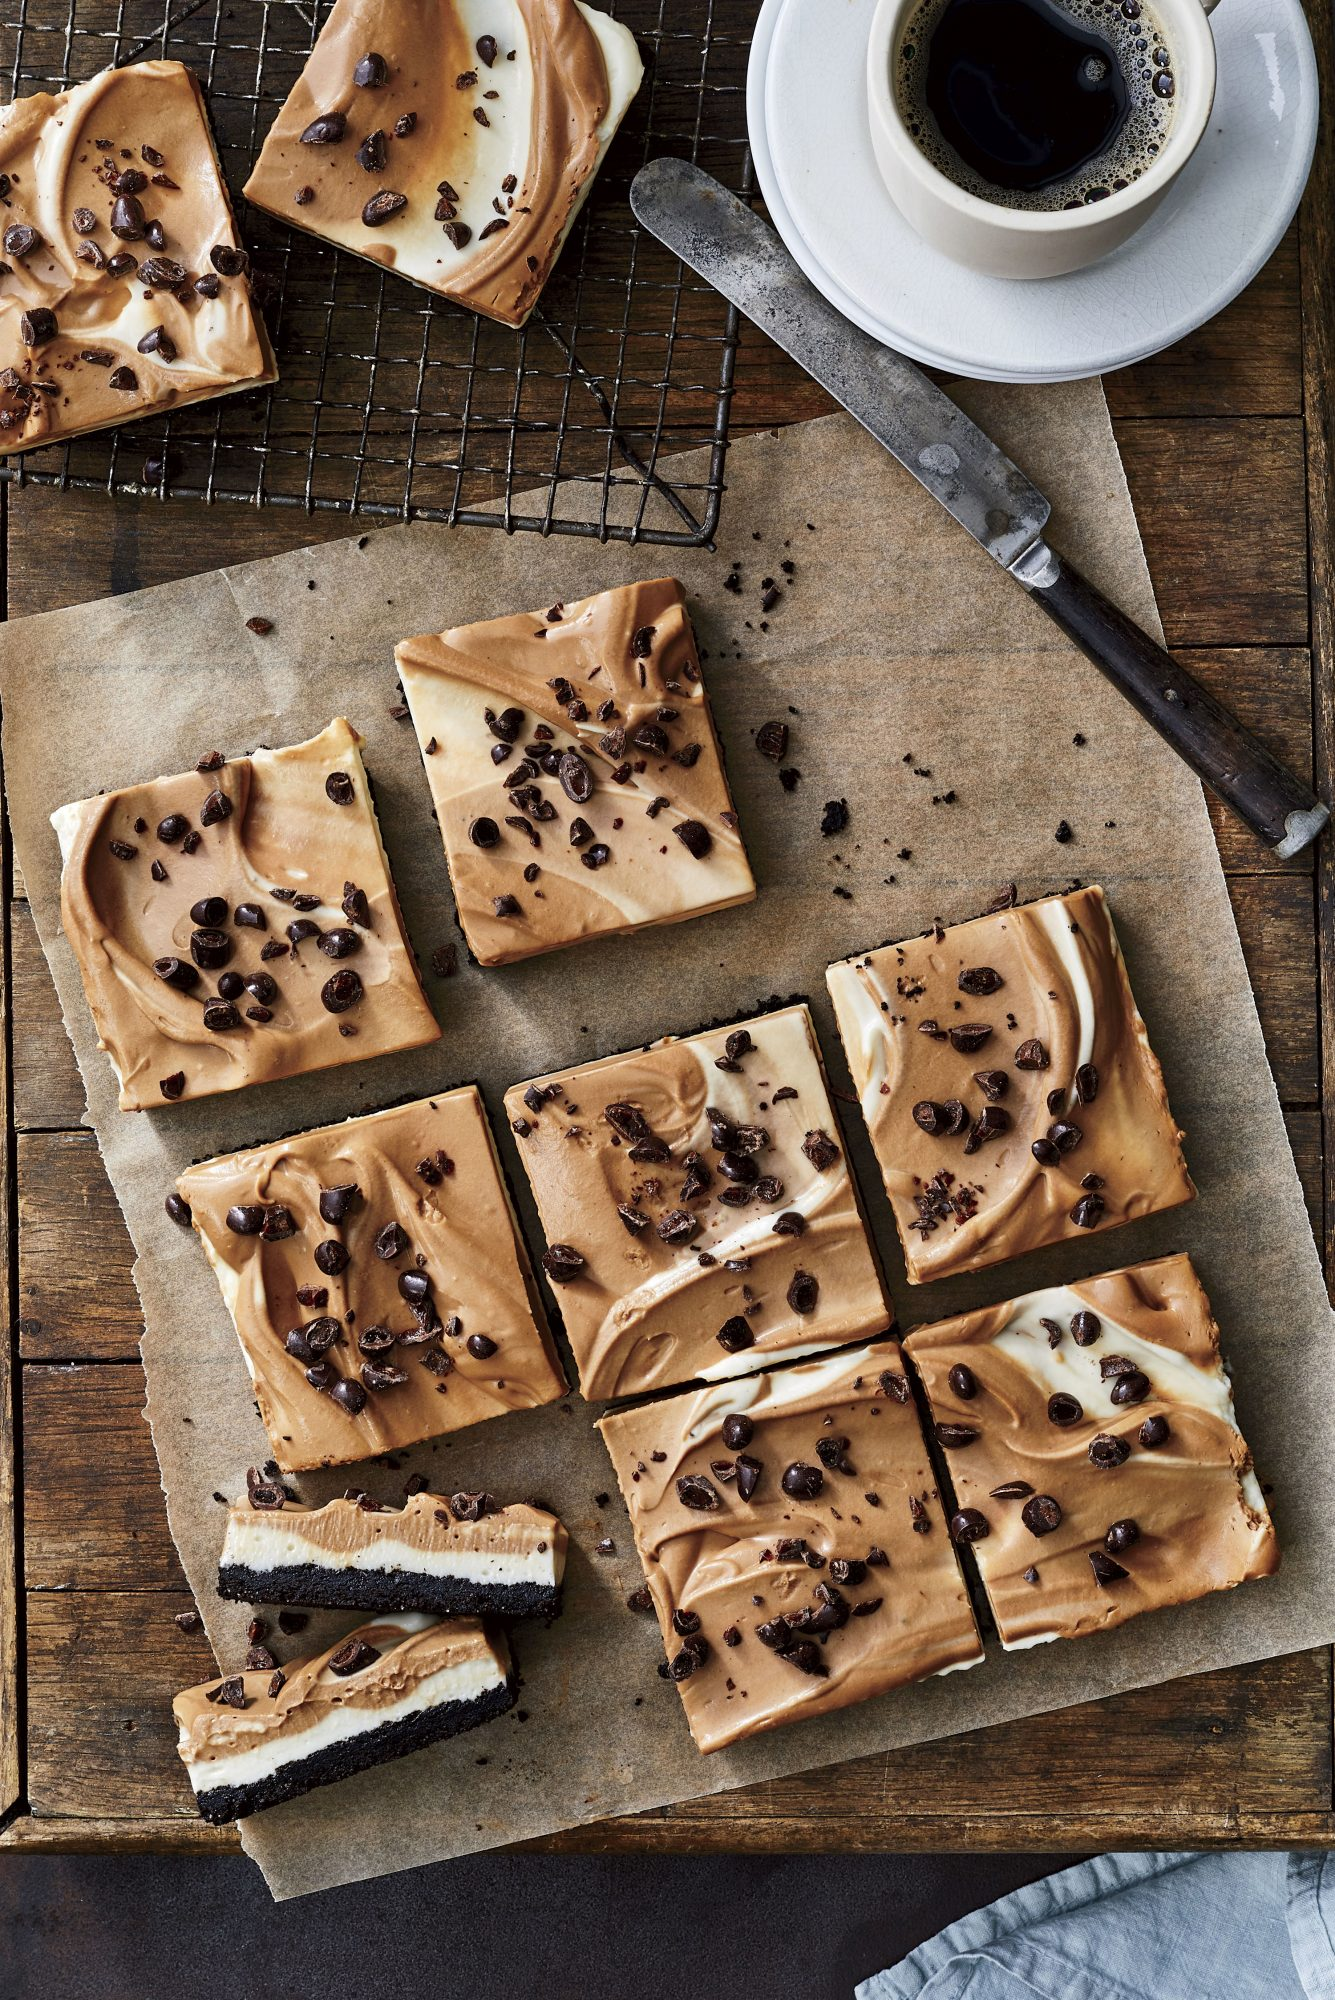 76 Coffee Desserts for a Sweet Pick-Me-Up